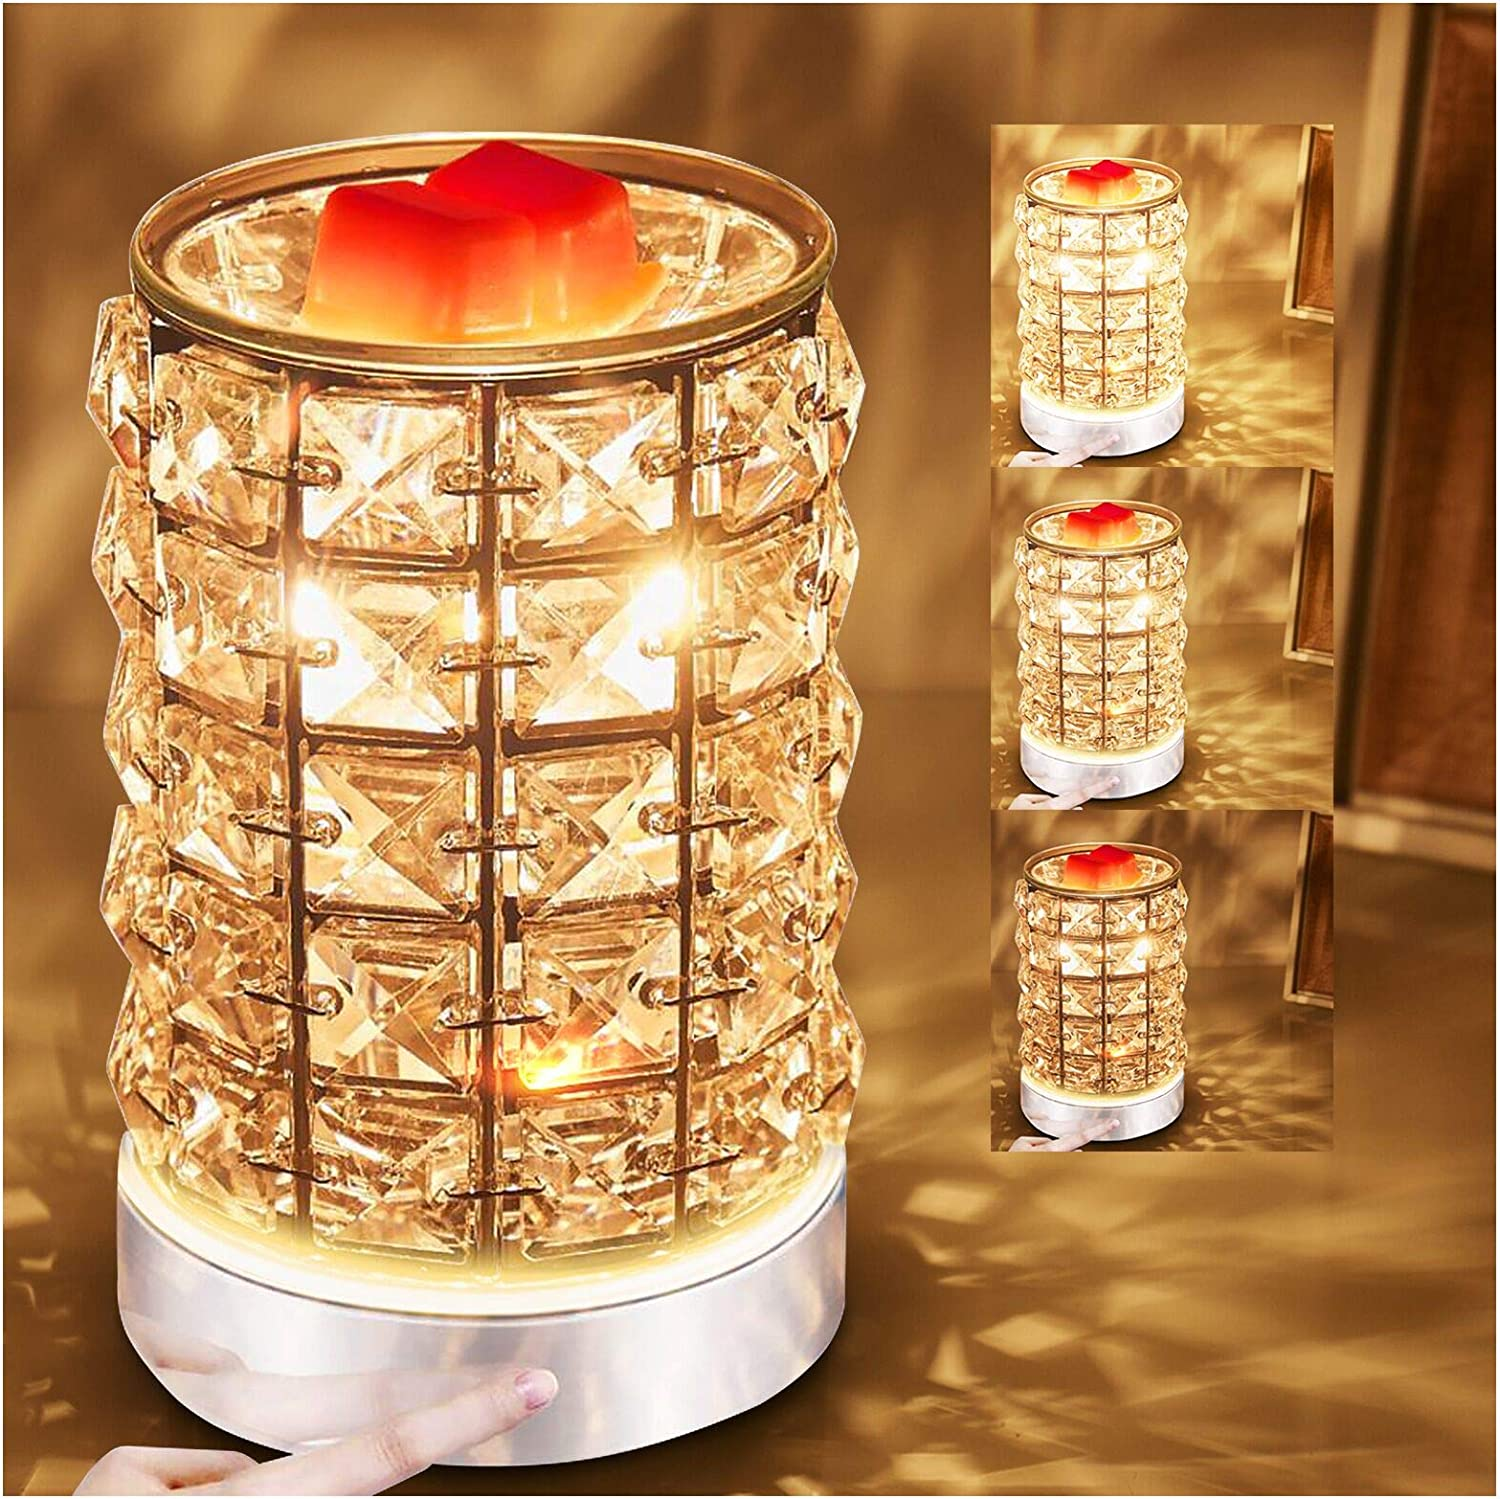 HEKALU Crystal Touch Electric Wax Limited time cheap sale shopping Dimmableï¼ Warmer with Melts